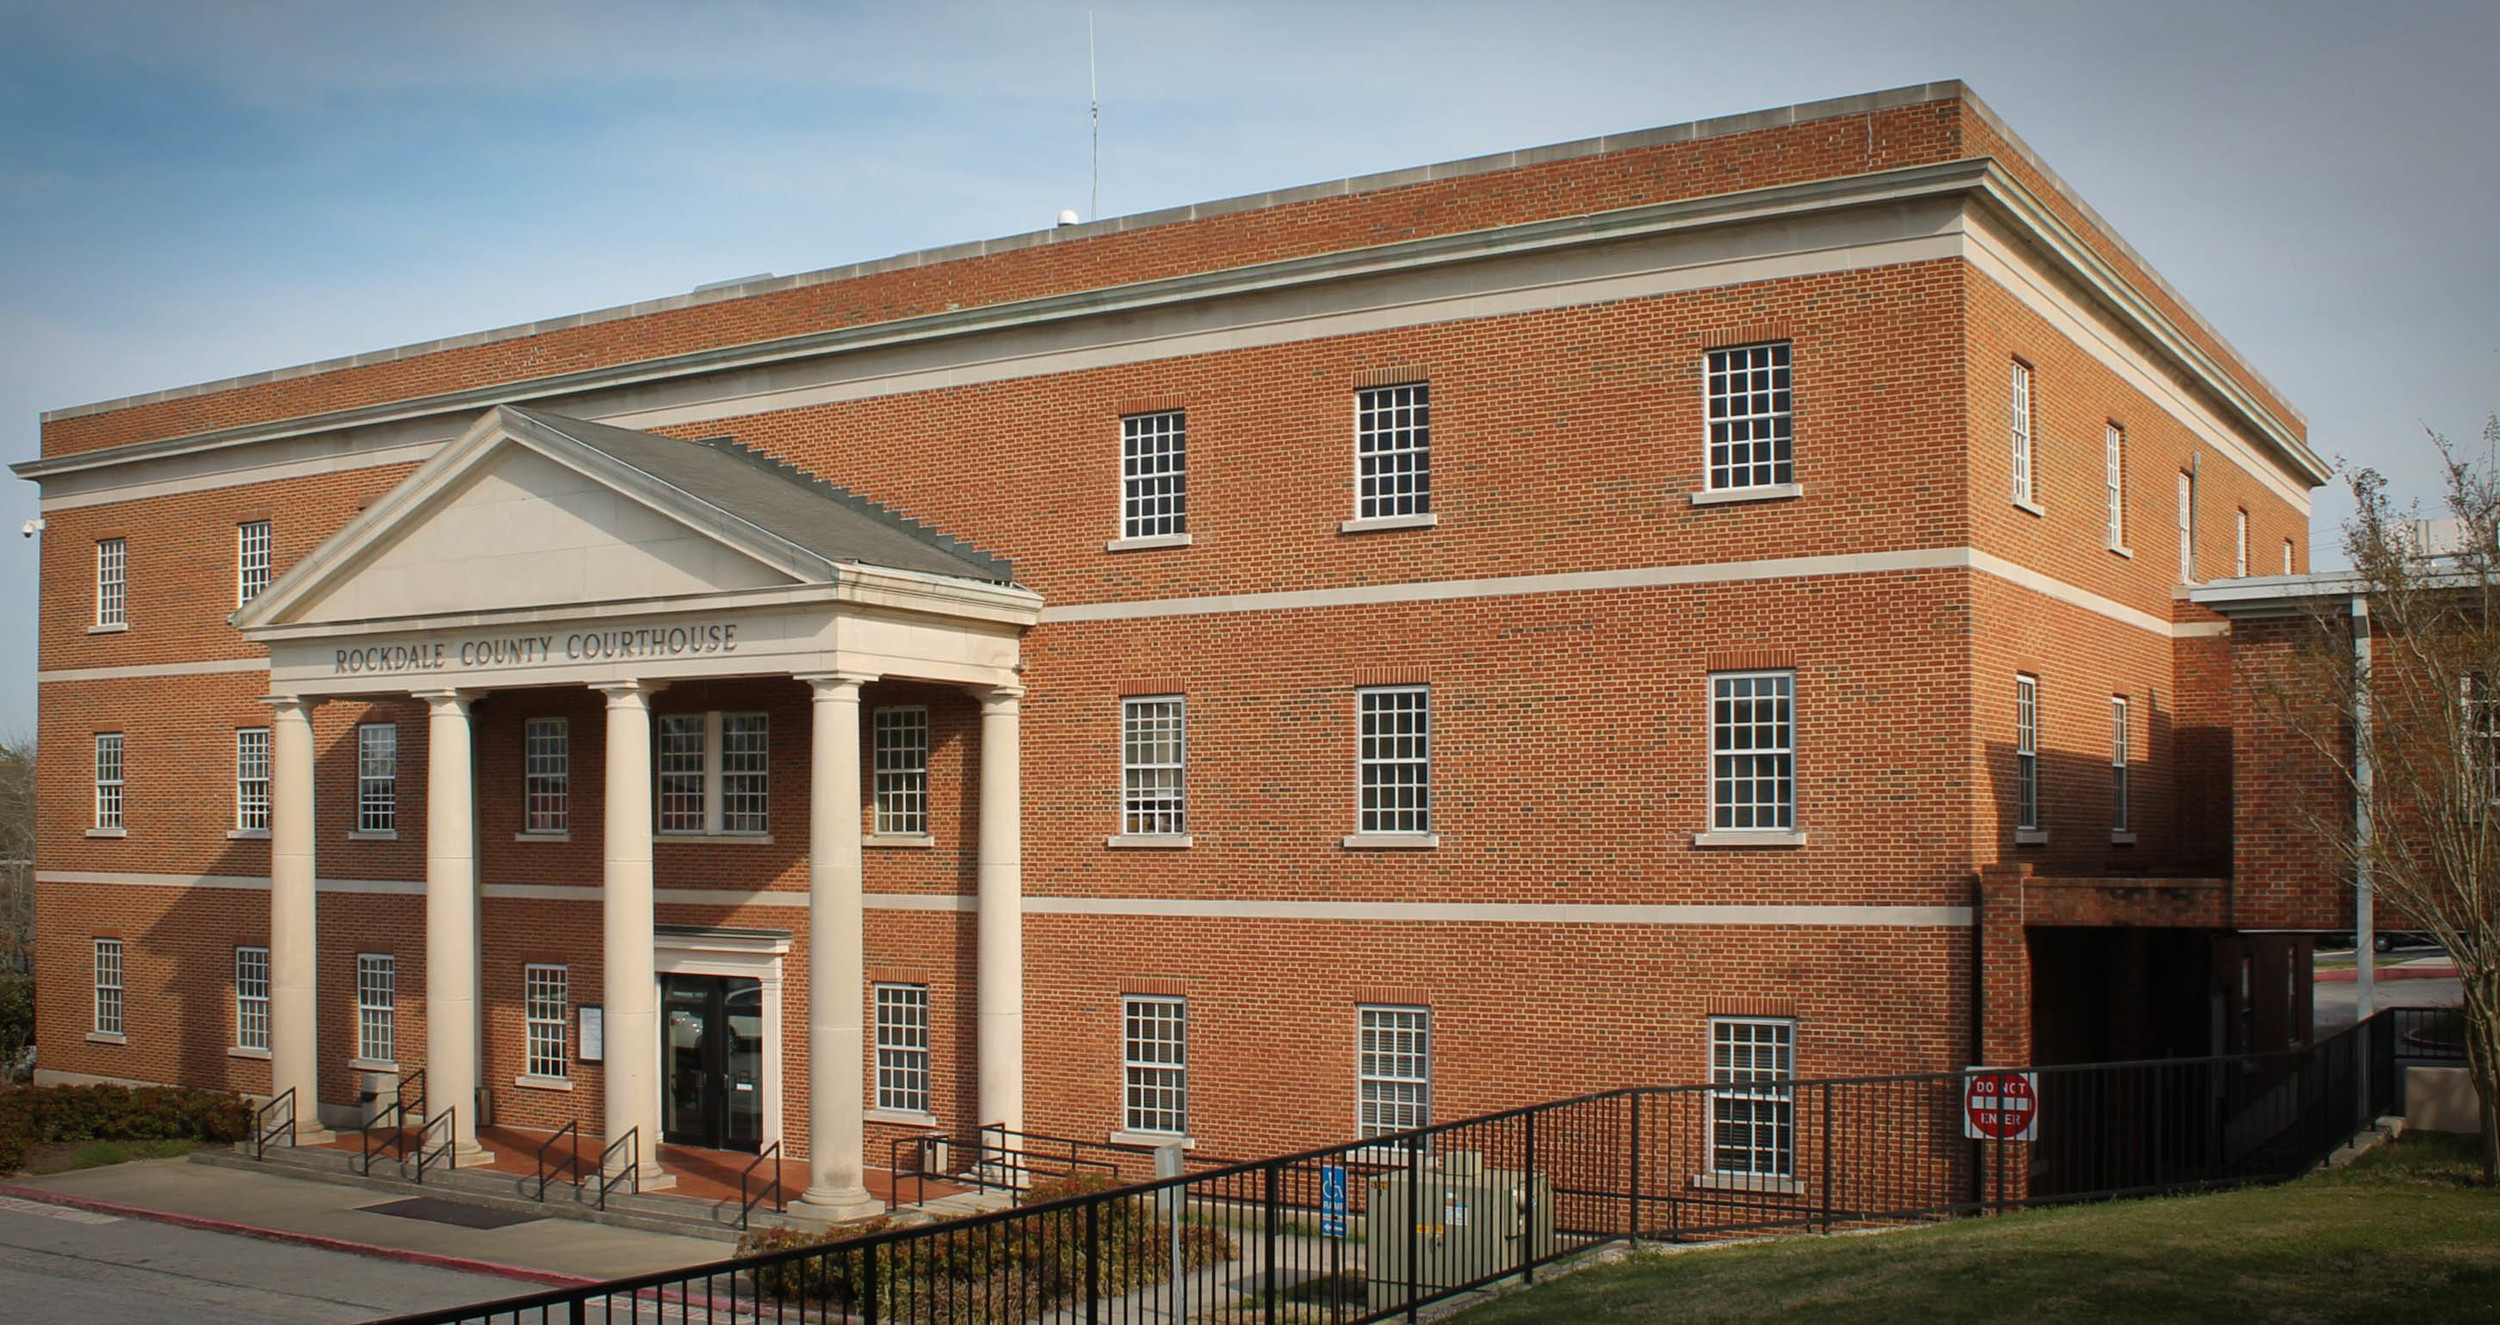 The Rockdale County Courthouse is one of the film locations for  Selma  - image via  Google .